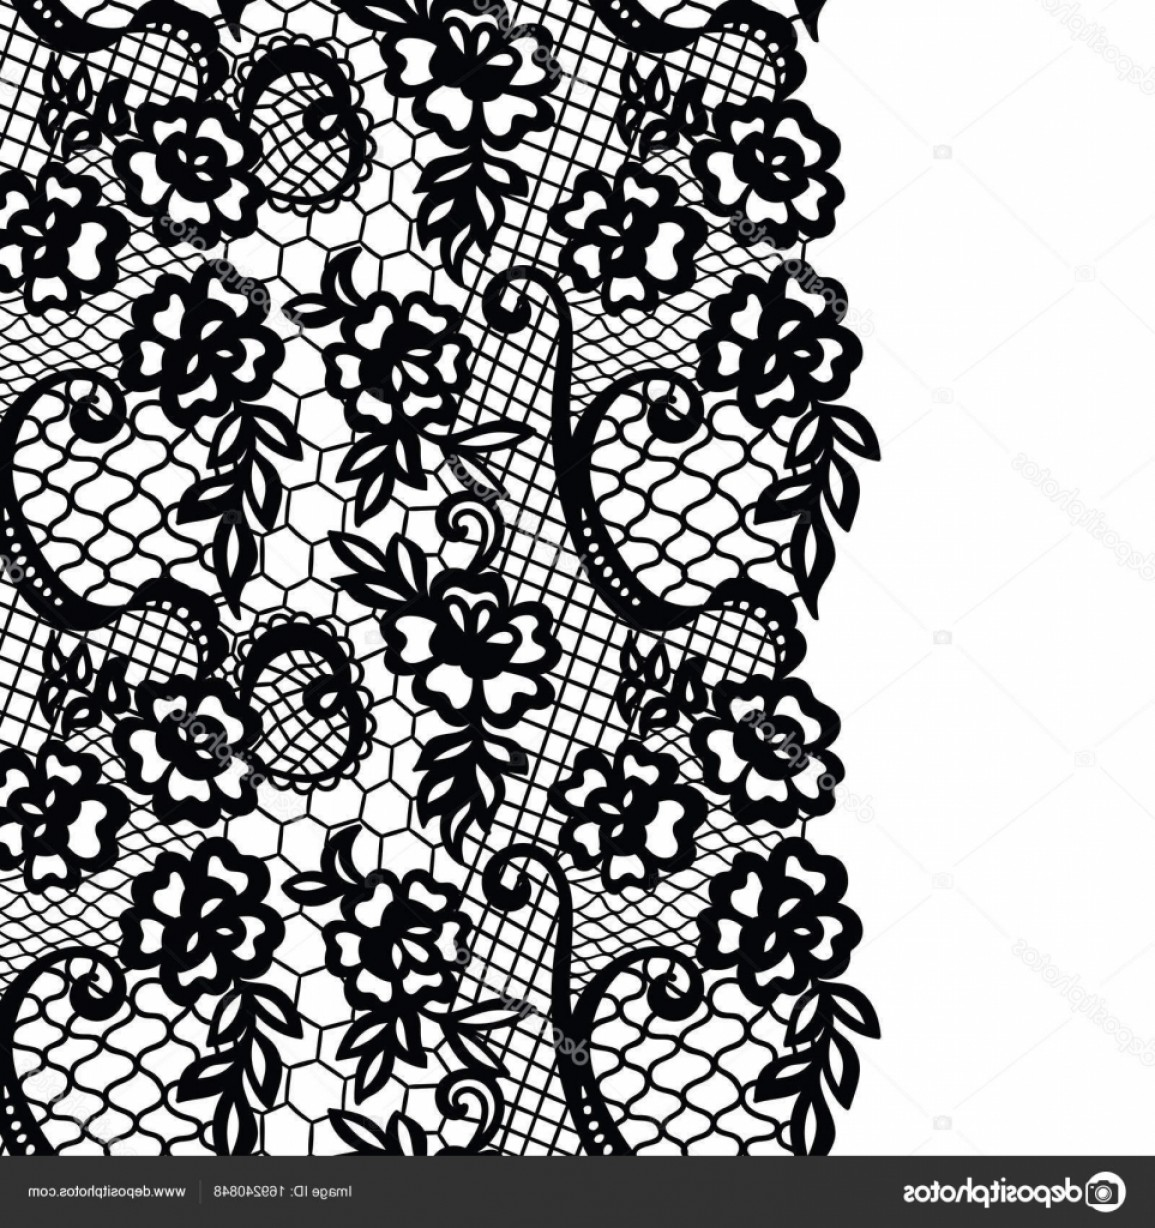 Floral Lace Trim Vector: Stock Illustration Seamless Lace Border Invitation Card